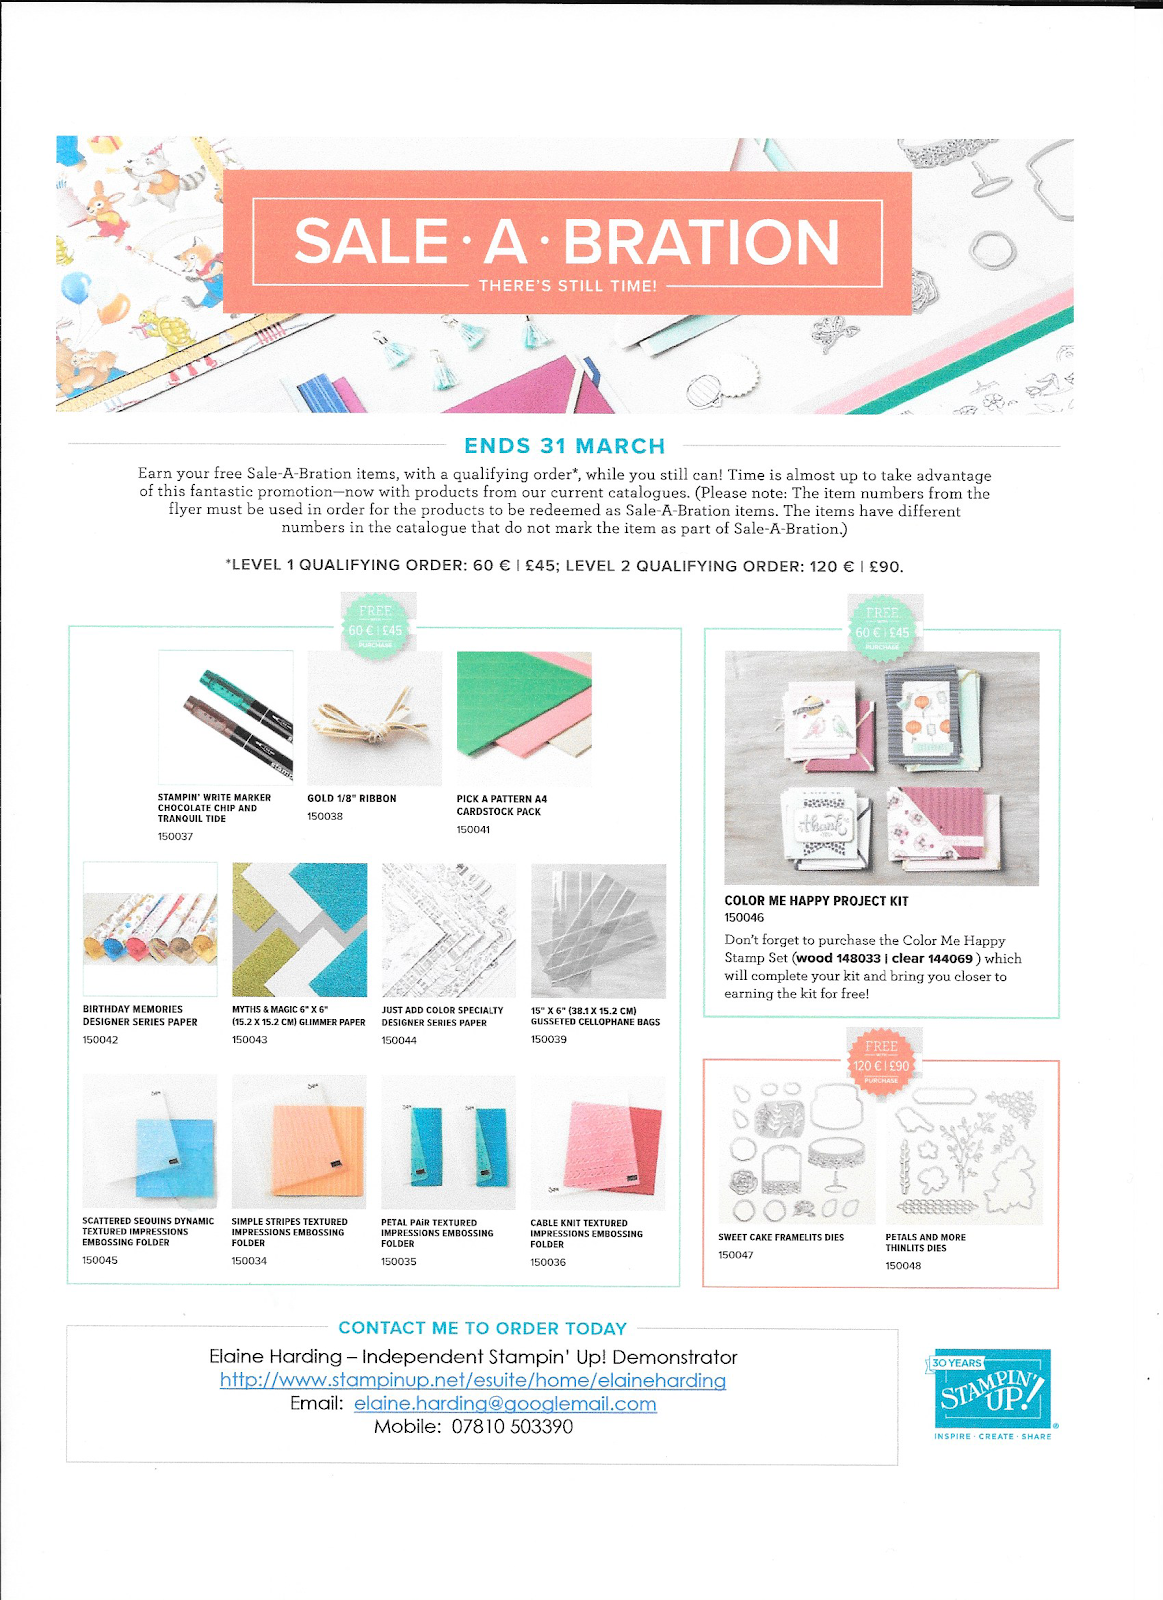 NEW ITEMS ADDED 3RD RELEASE SALE-A-BRATION FROM CURRENT CATALOGUES!